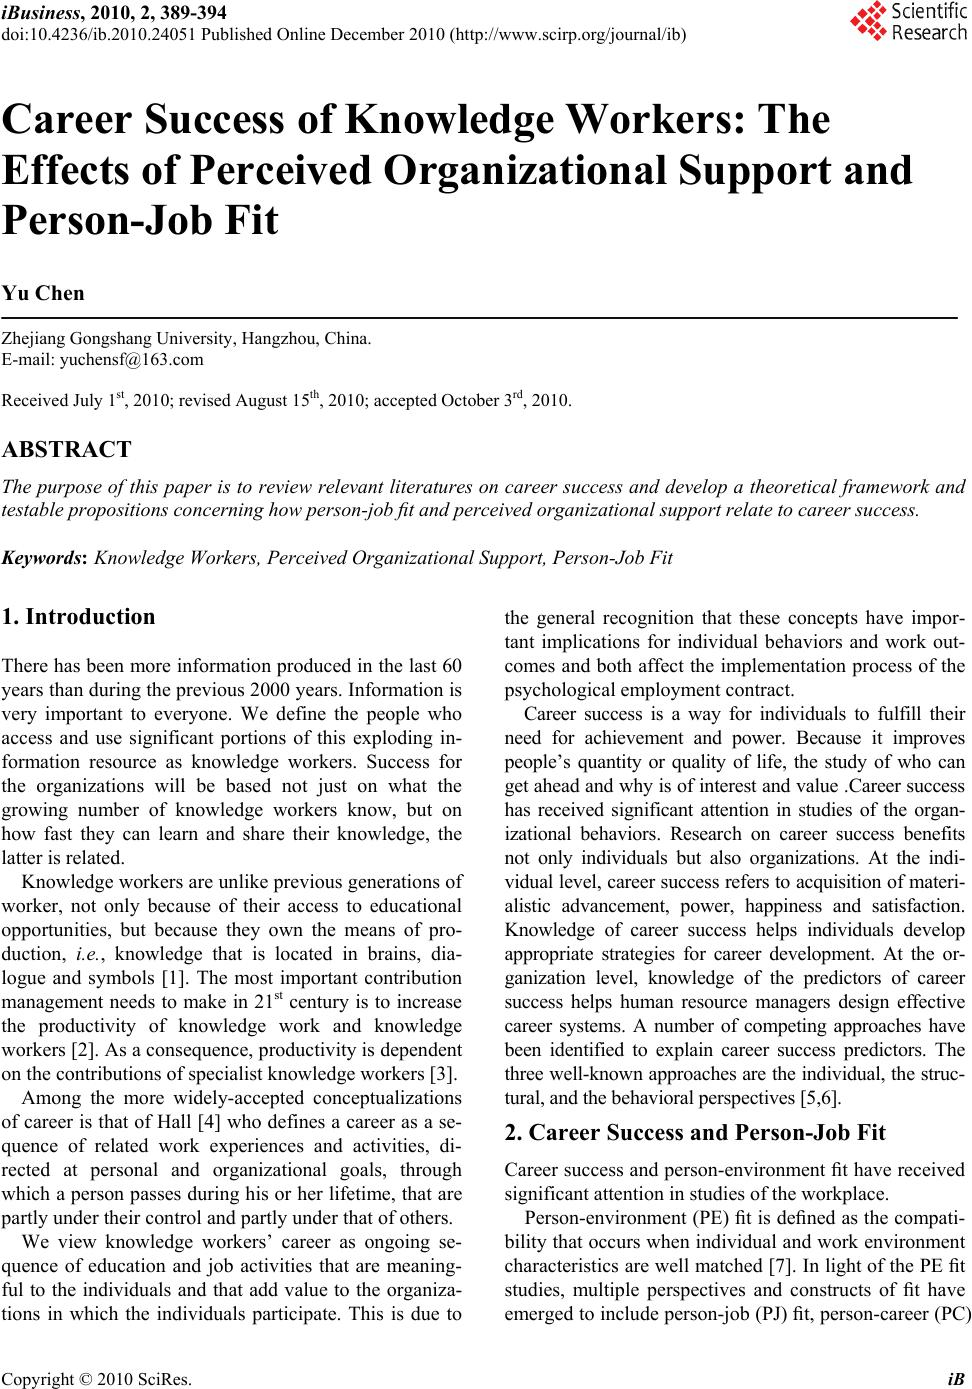 career success of knowledge workers the effects of perceived career success of knowledge workers the effects of perceived organizational support and person job fit